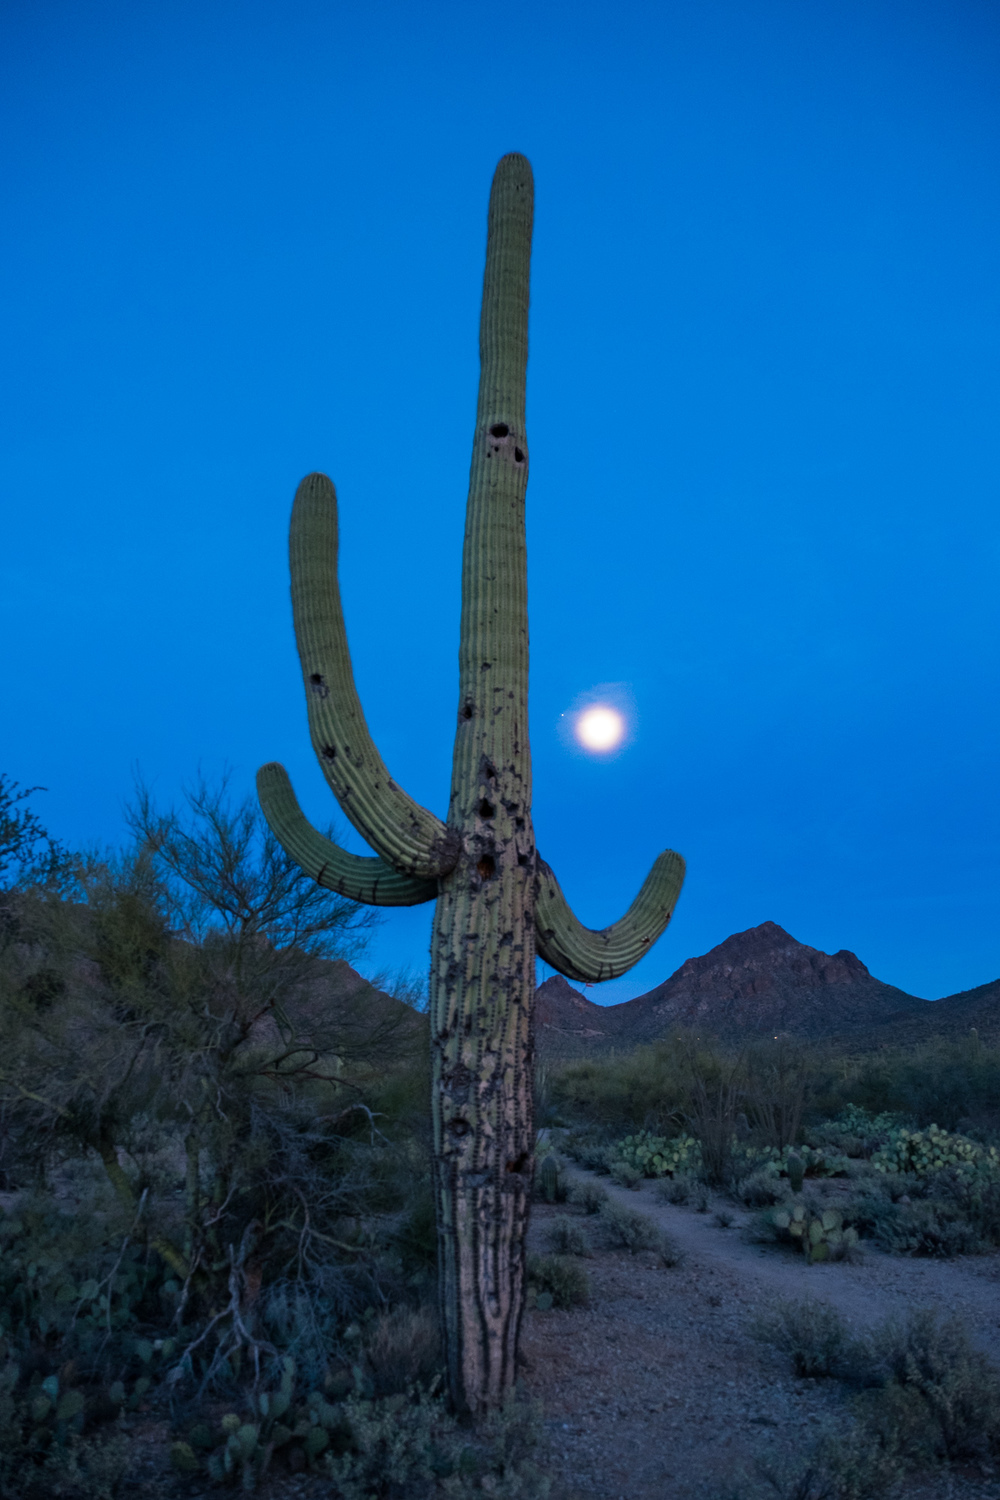 A nighttime walk among the cactus and the moon glow.